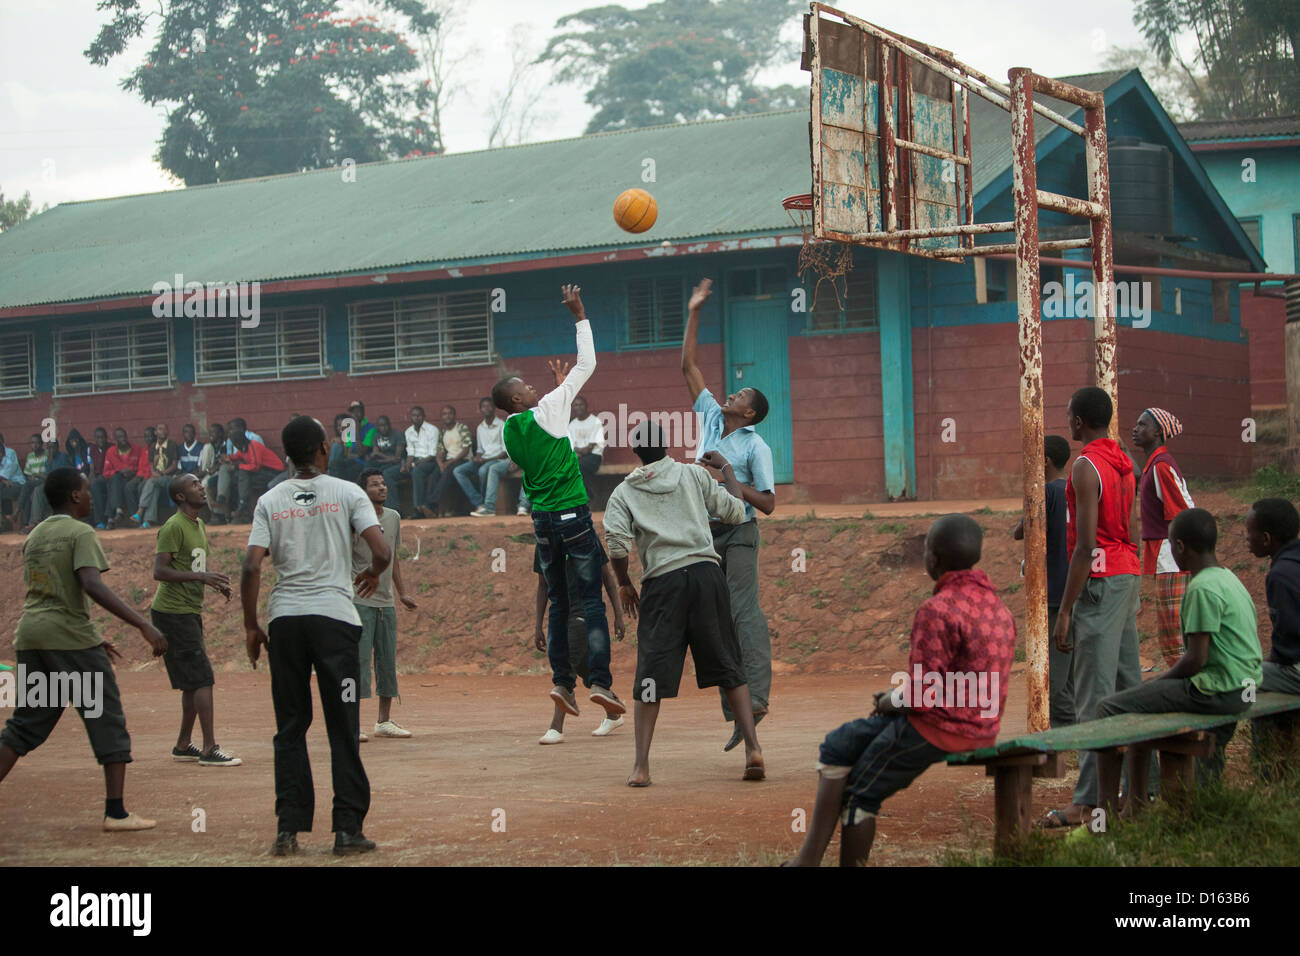 Secondary school students play basketball after classes in Nyeri, Kenya, East Africa. - Stock Image